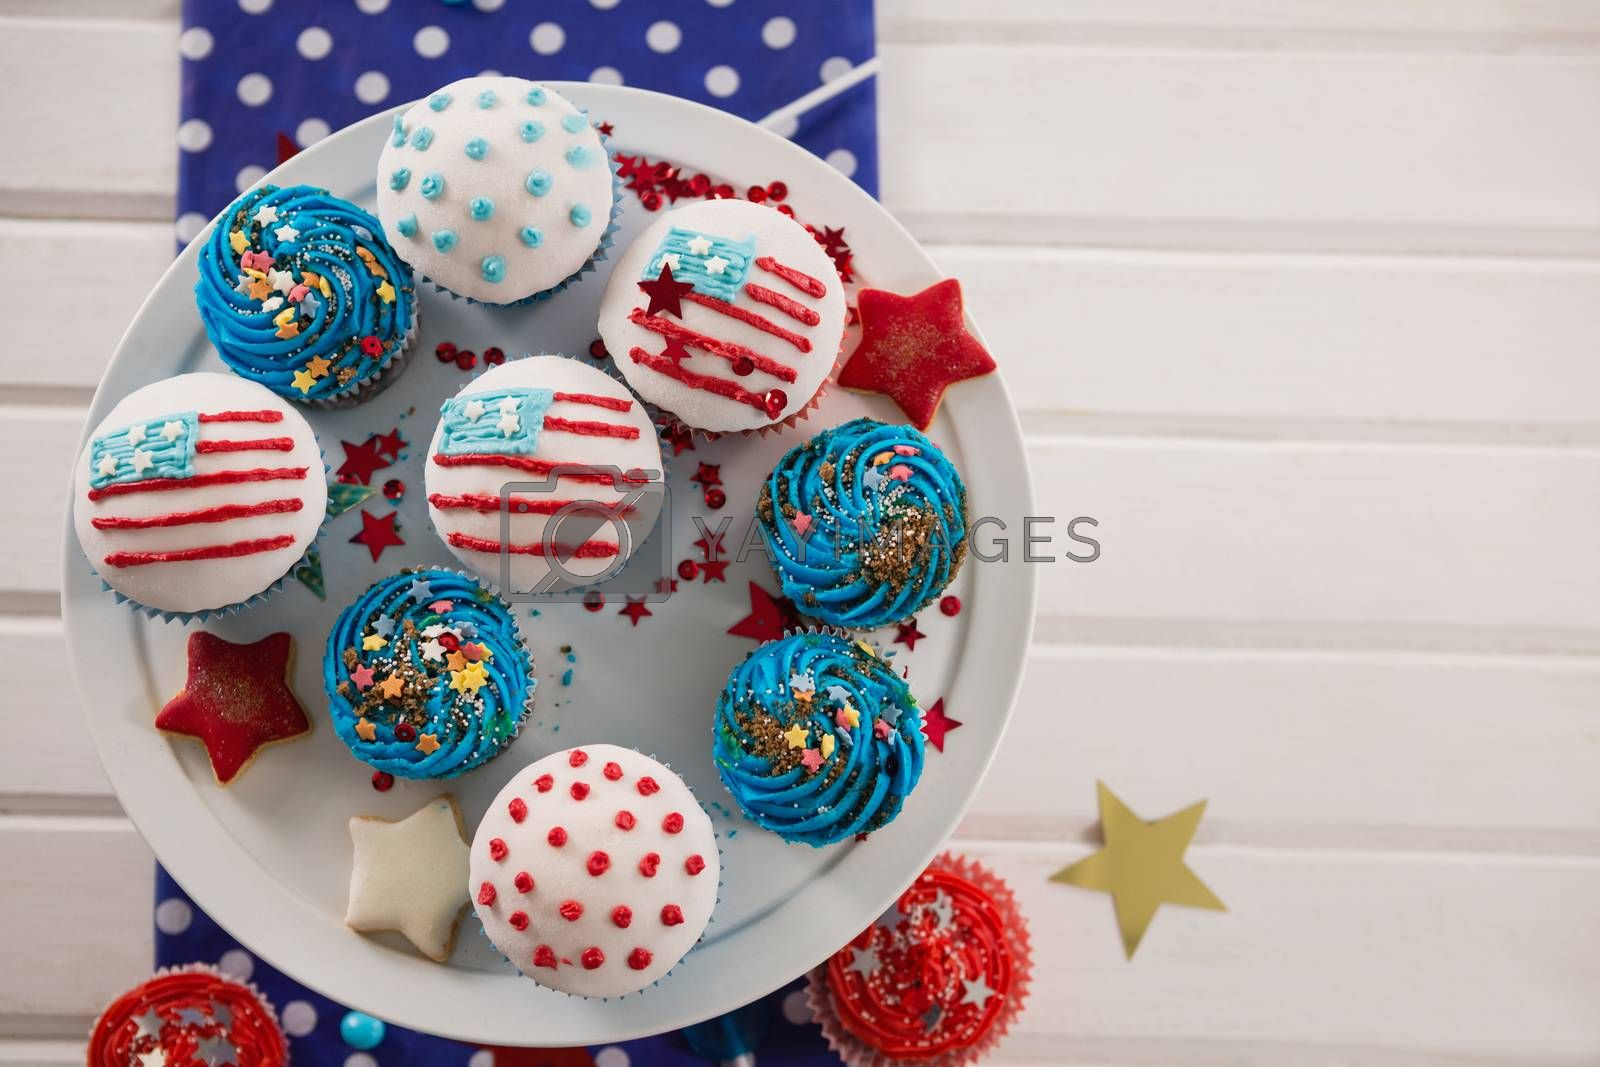 Decorated cupcakes with 4th july theme arranged on cakestand